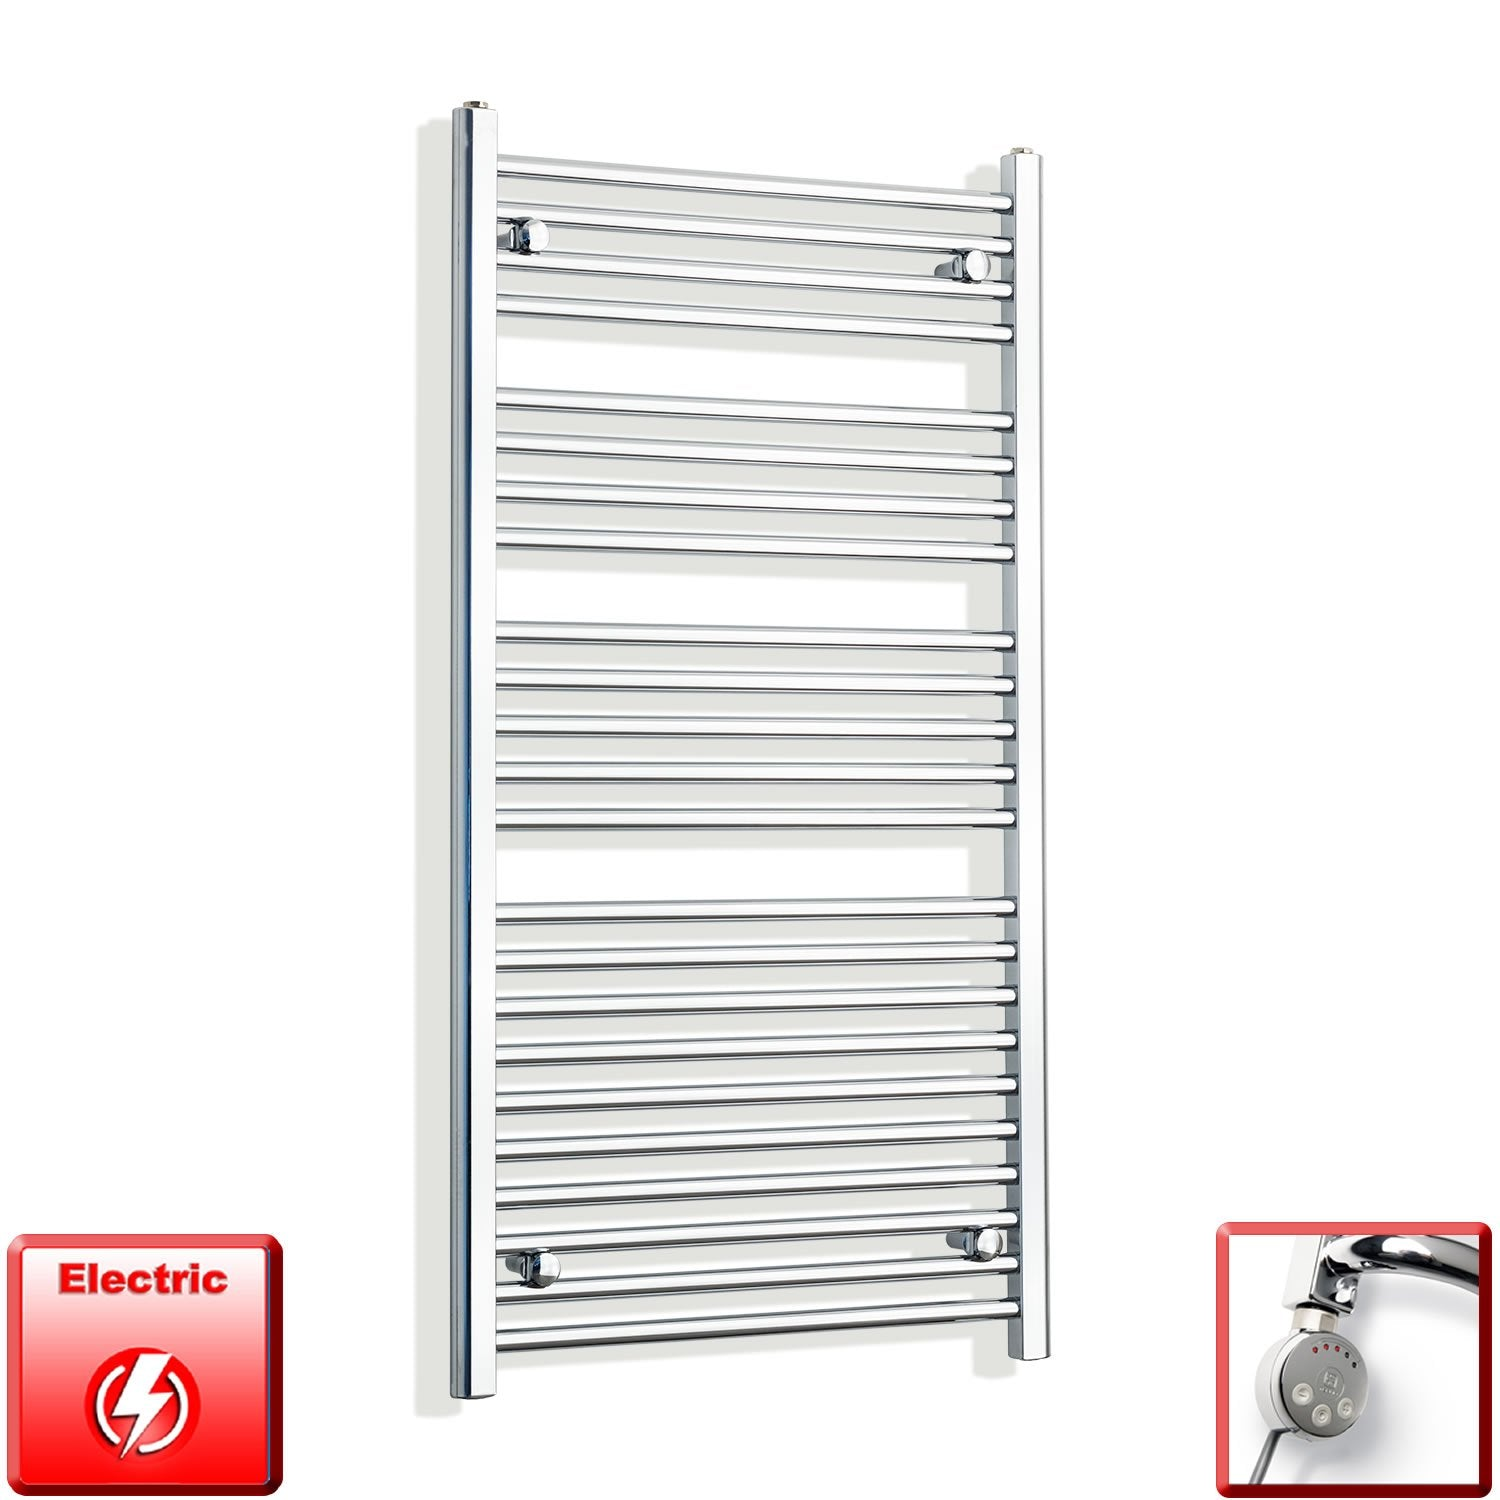 650mm Wide 1200mm High Flat Chrome Pre-Filled Electric Heated Towel Rail Radiator HTR,MEG Thermostatic Element